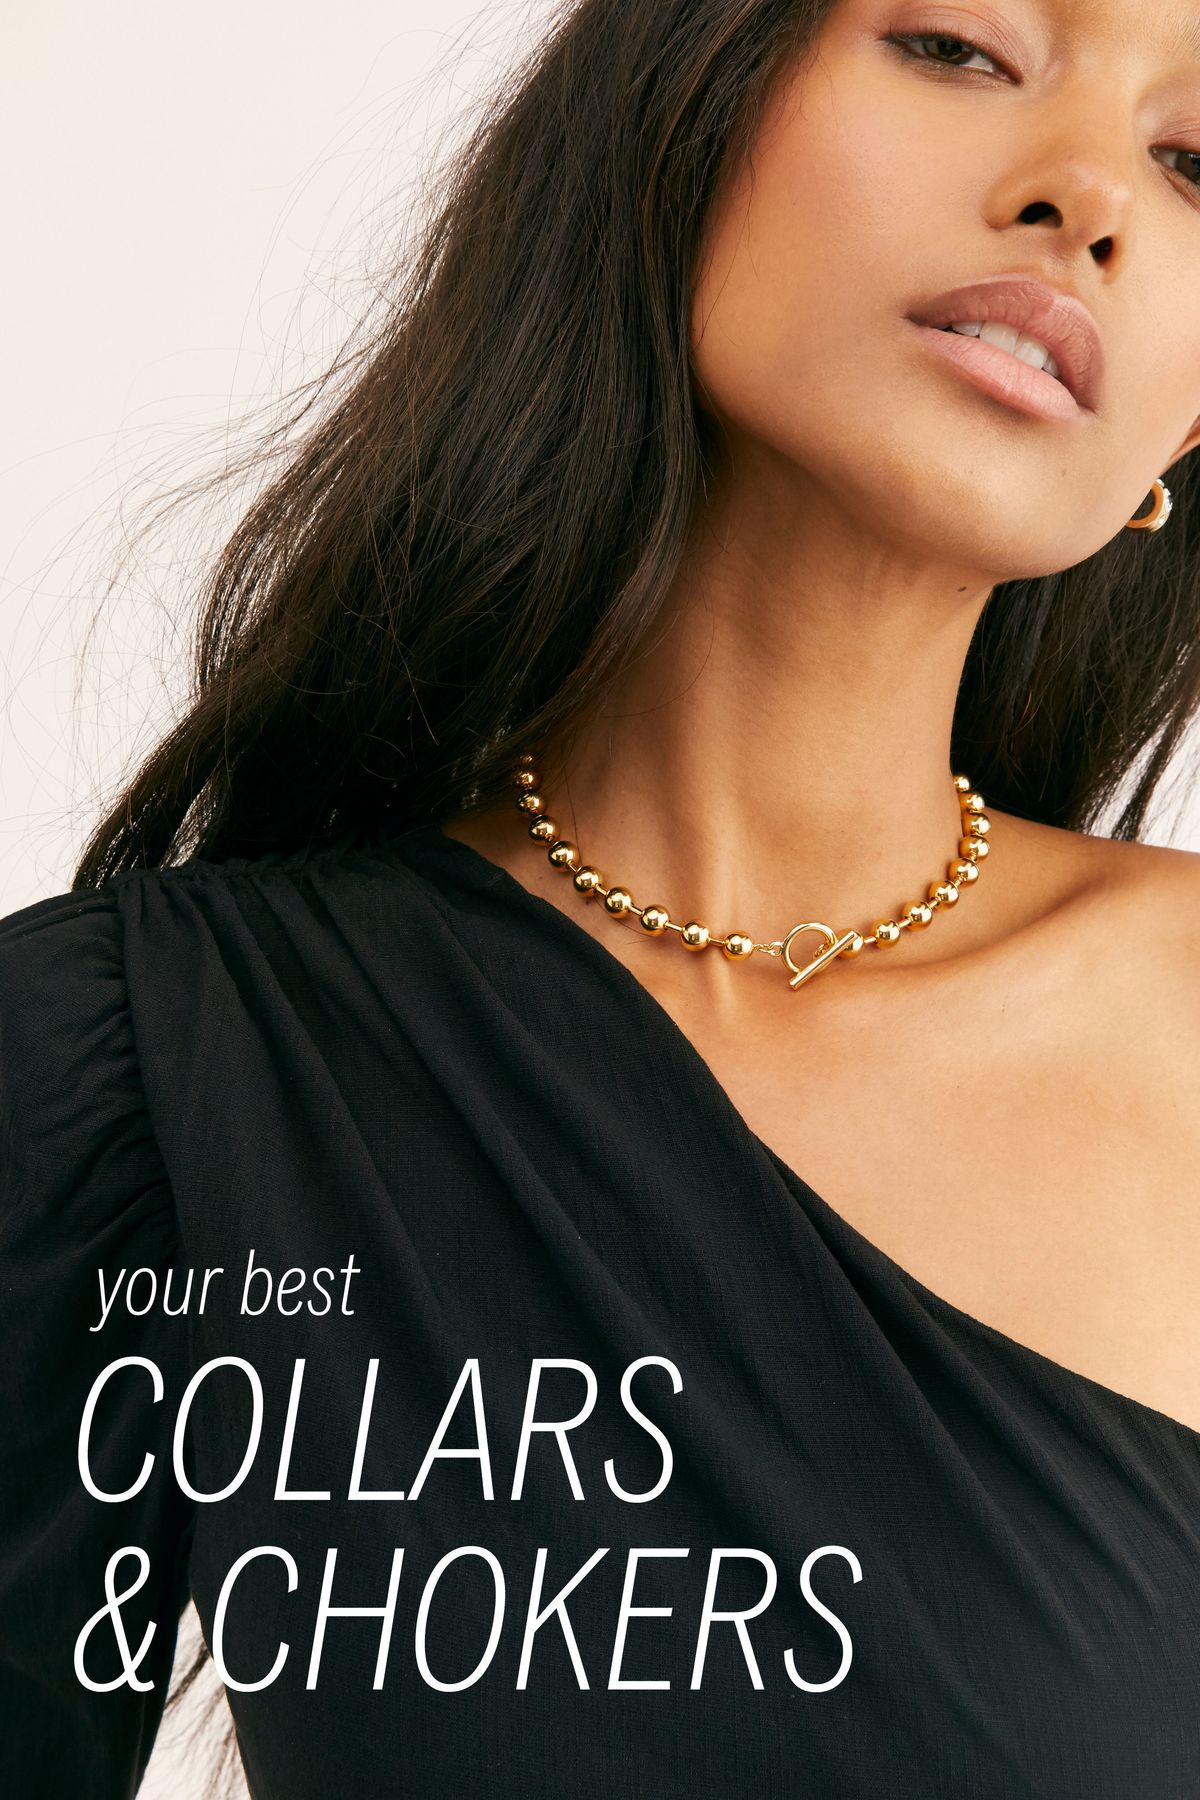 Your Best Collars & Chokers